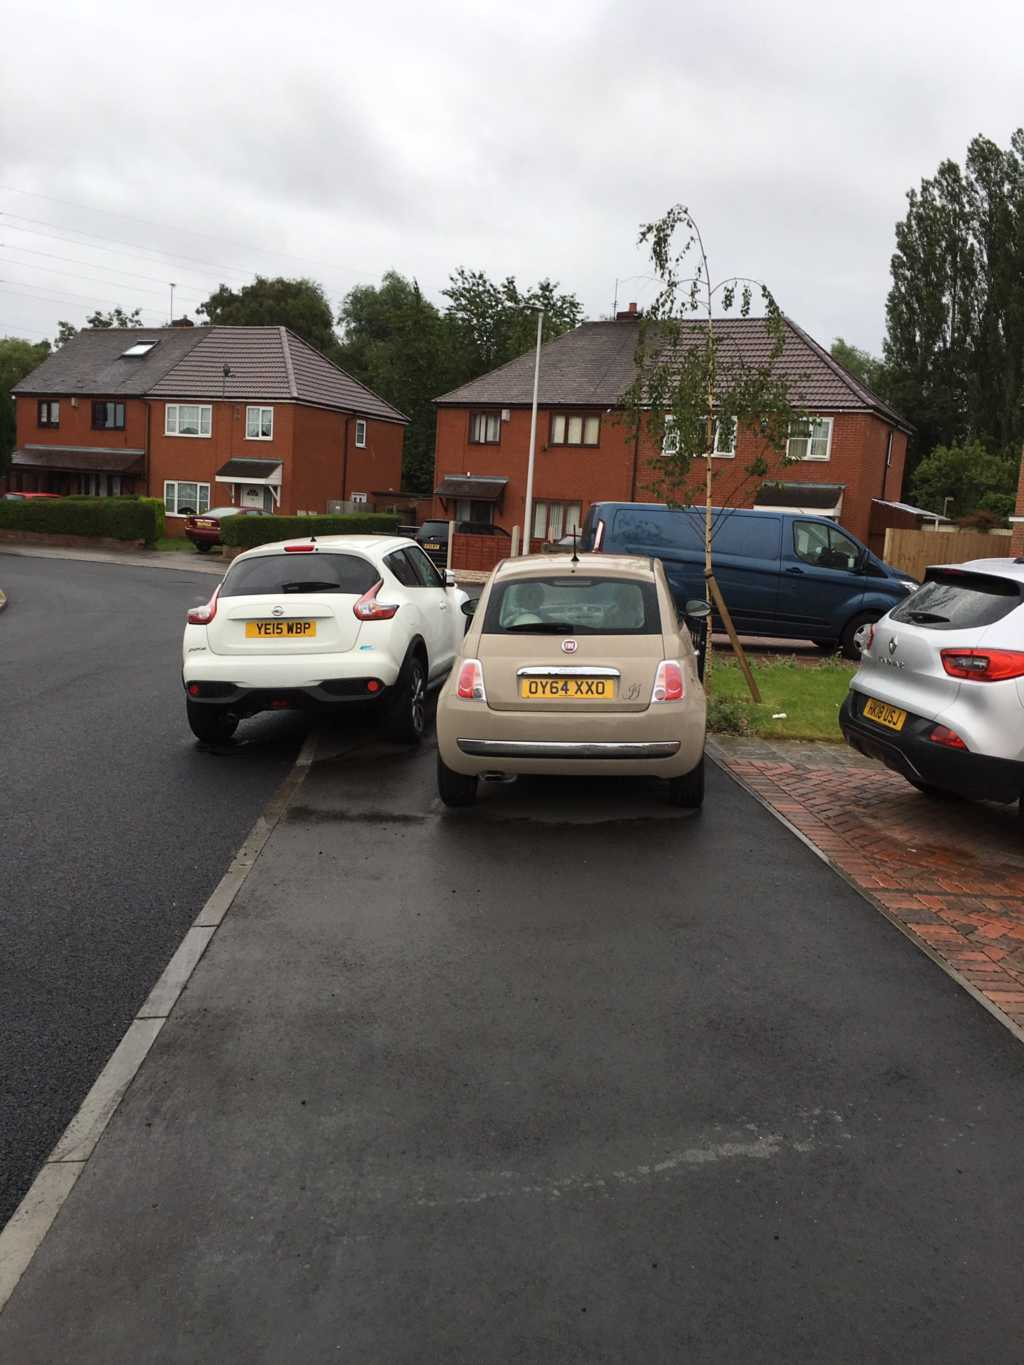 YE15 WBP displaying Inconsiderate Parking